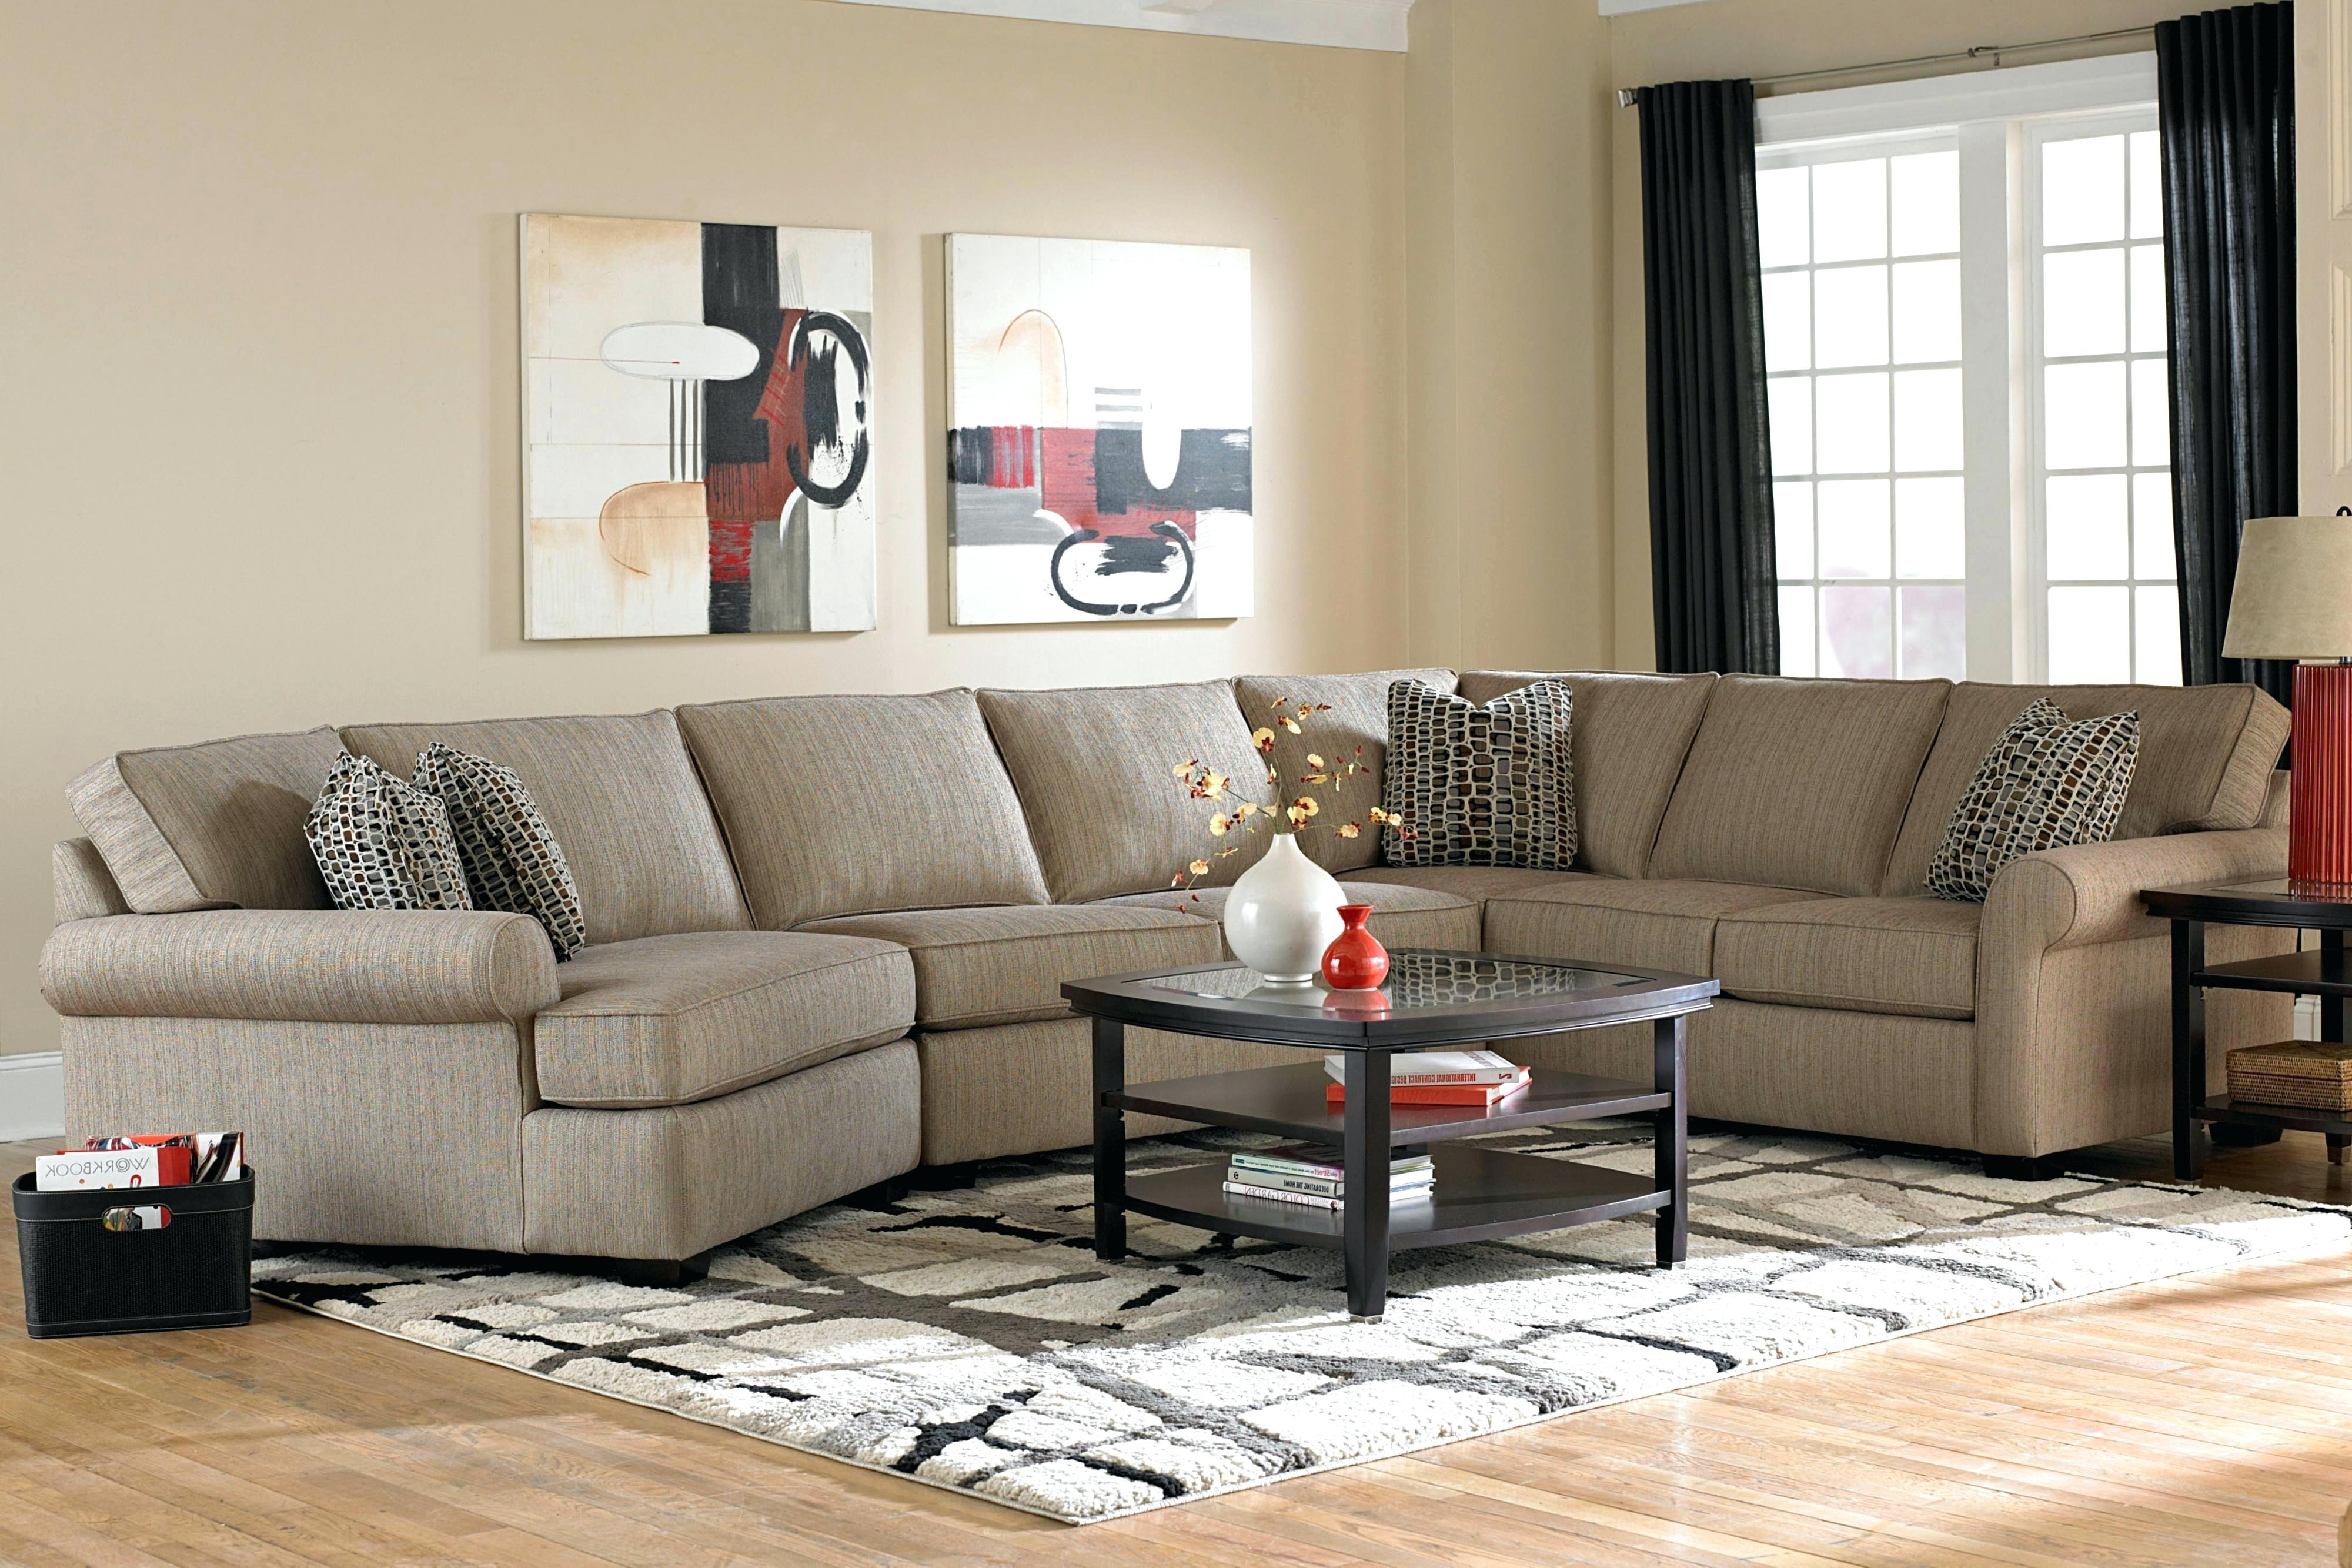 Broyhill Sectional Sofas Regarding Most Up To Date Broyhill Furniture Sale 3 Sofa With All Around Wood Base – 4parkar (View 8 of 20)